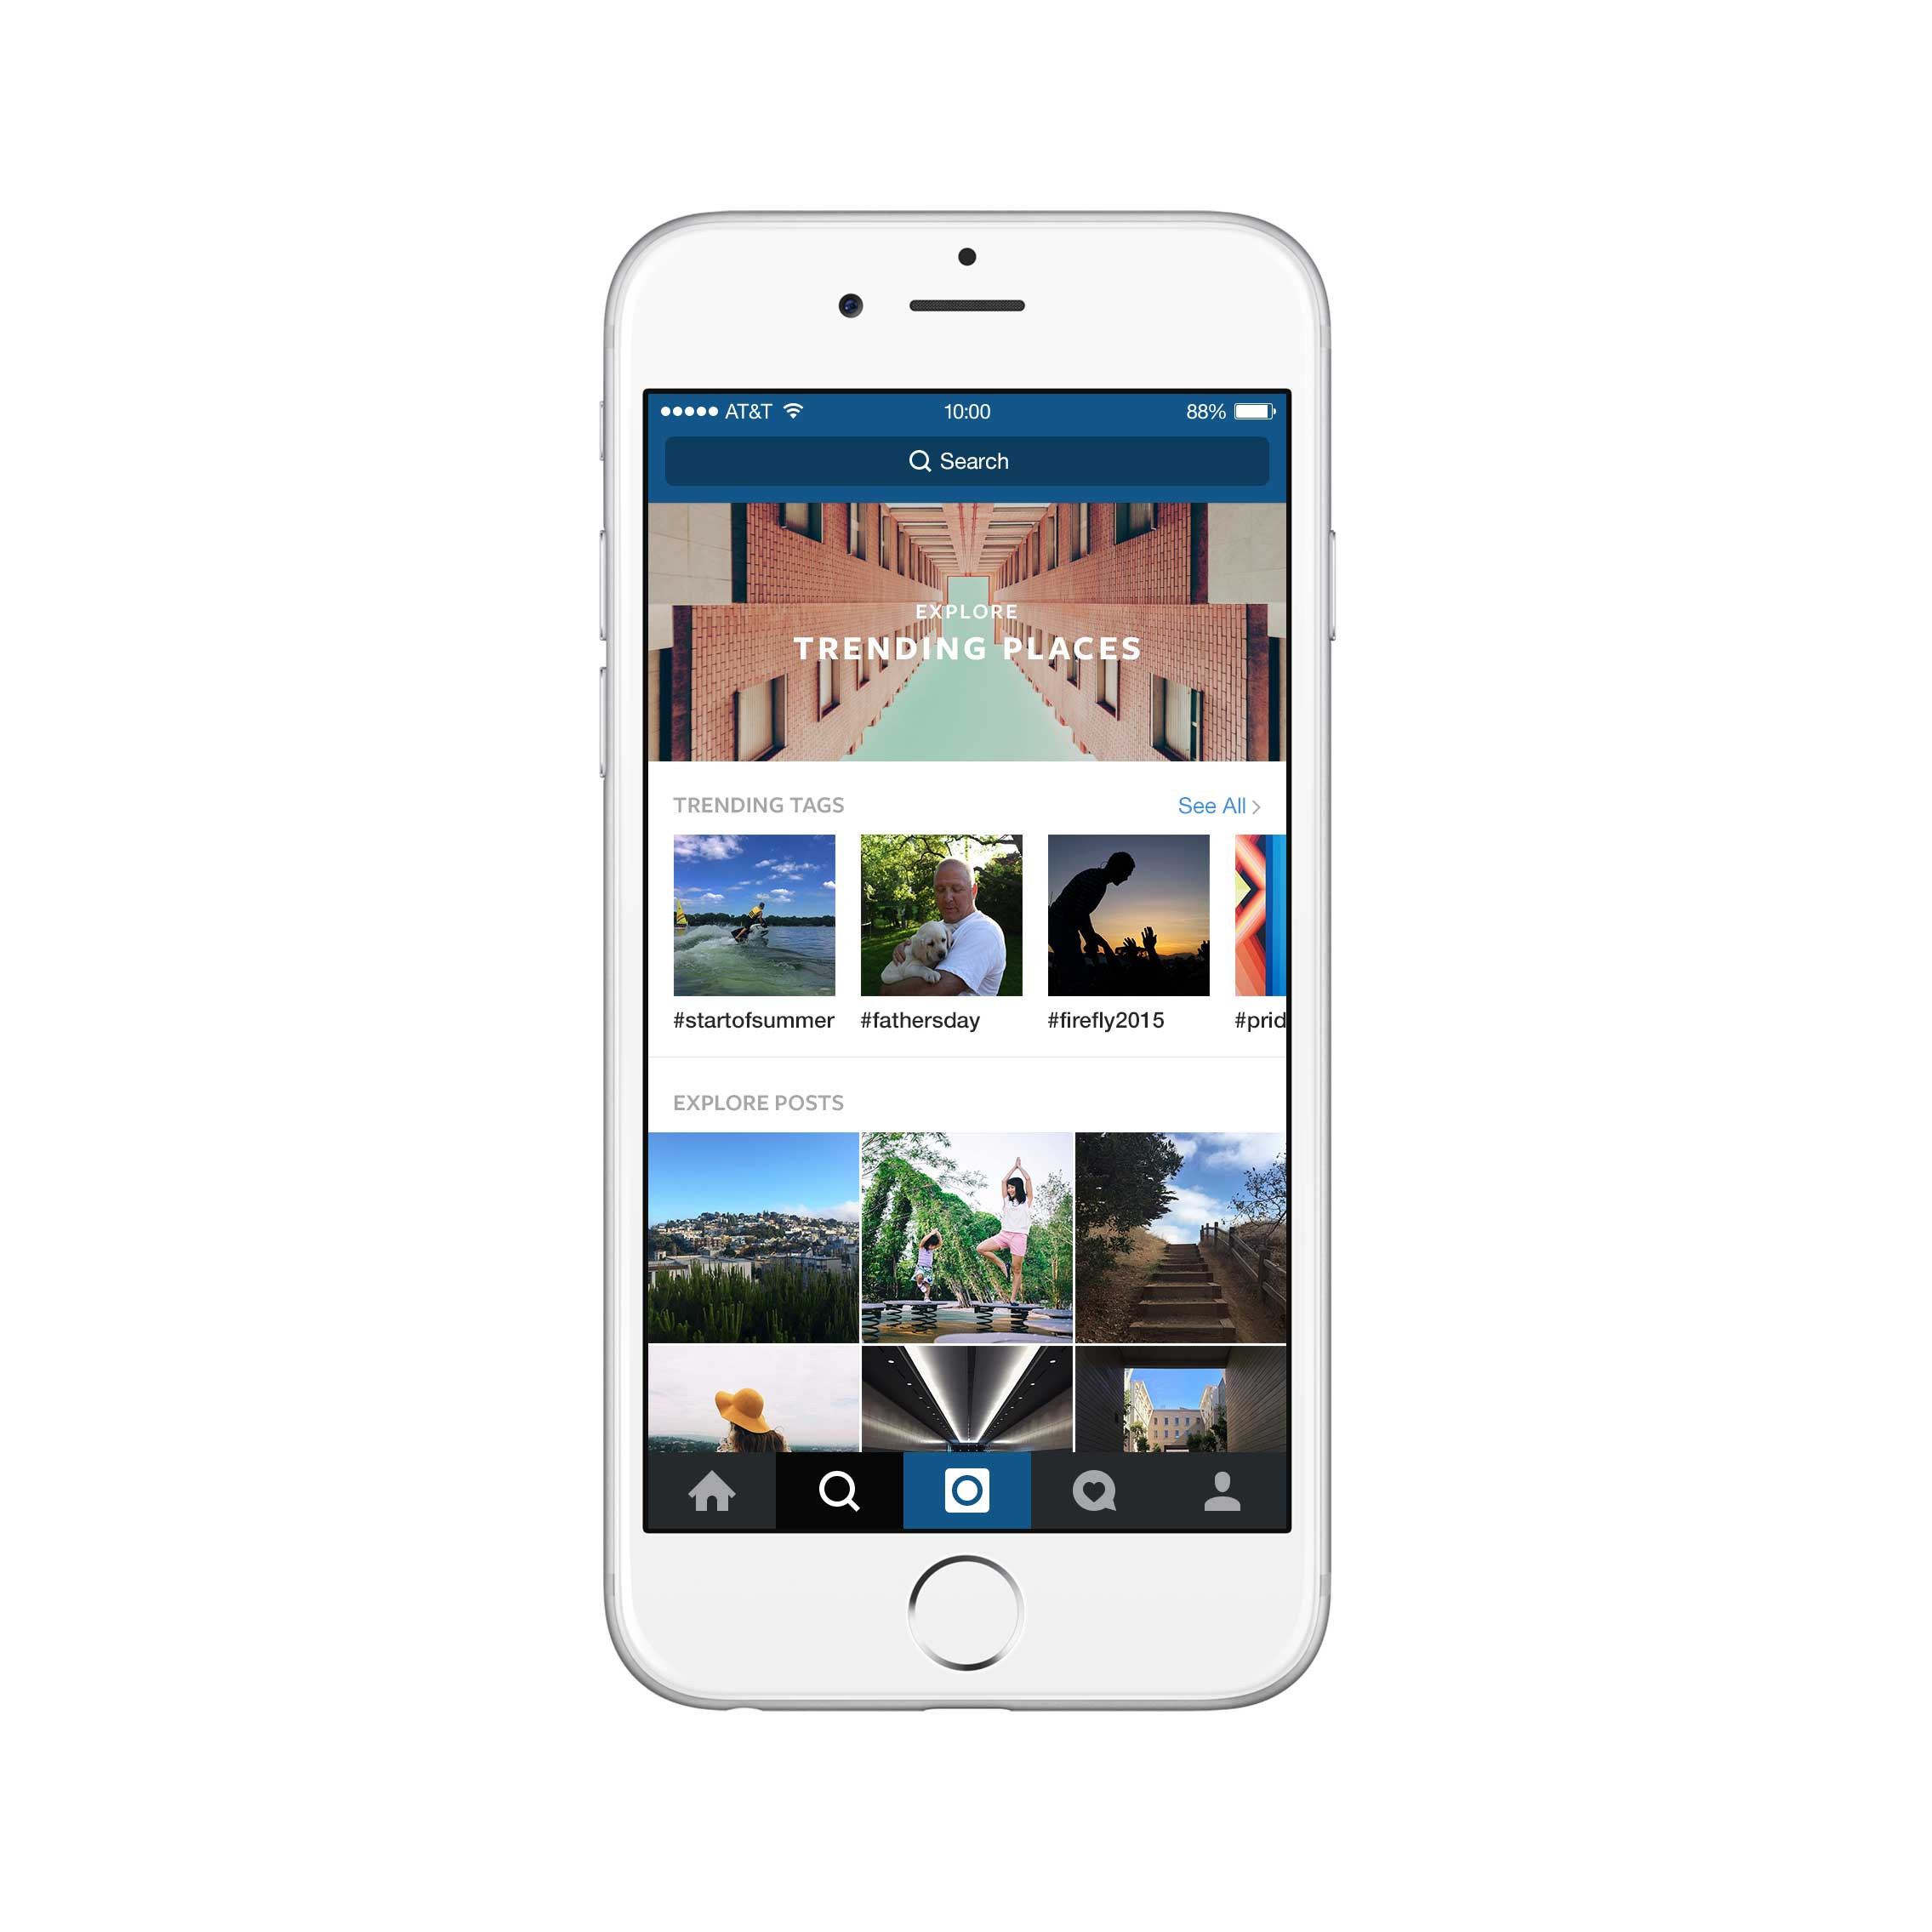 Instagram's new Explore section features Trending Places and Hastags as well as curated selections of user accounts